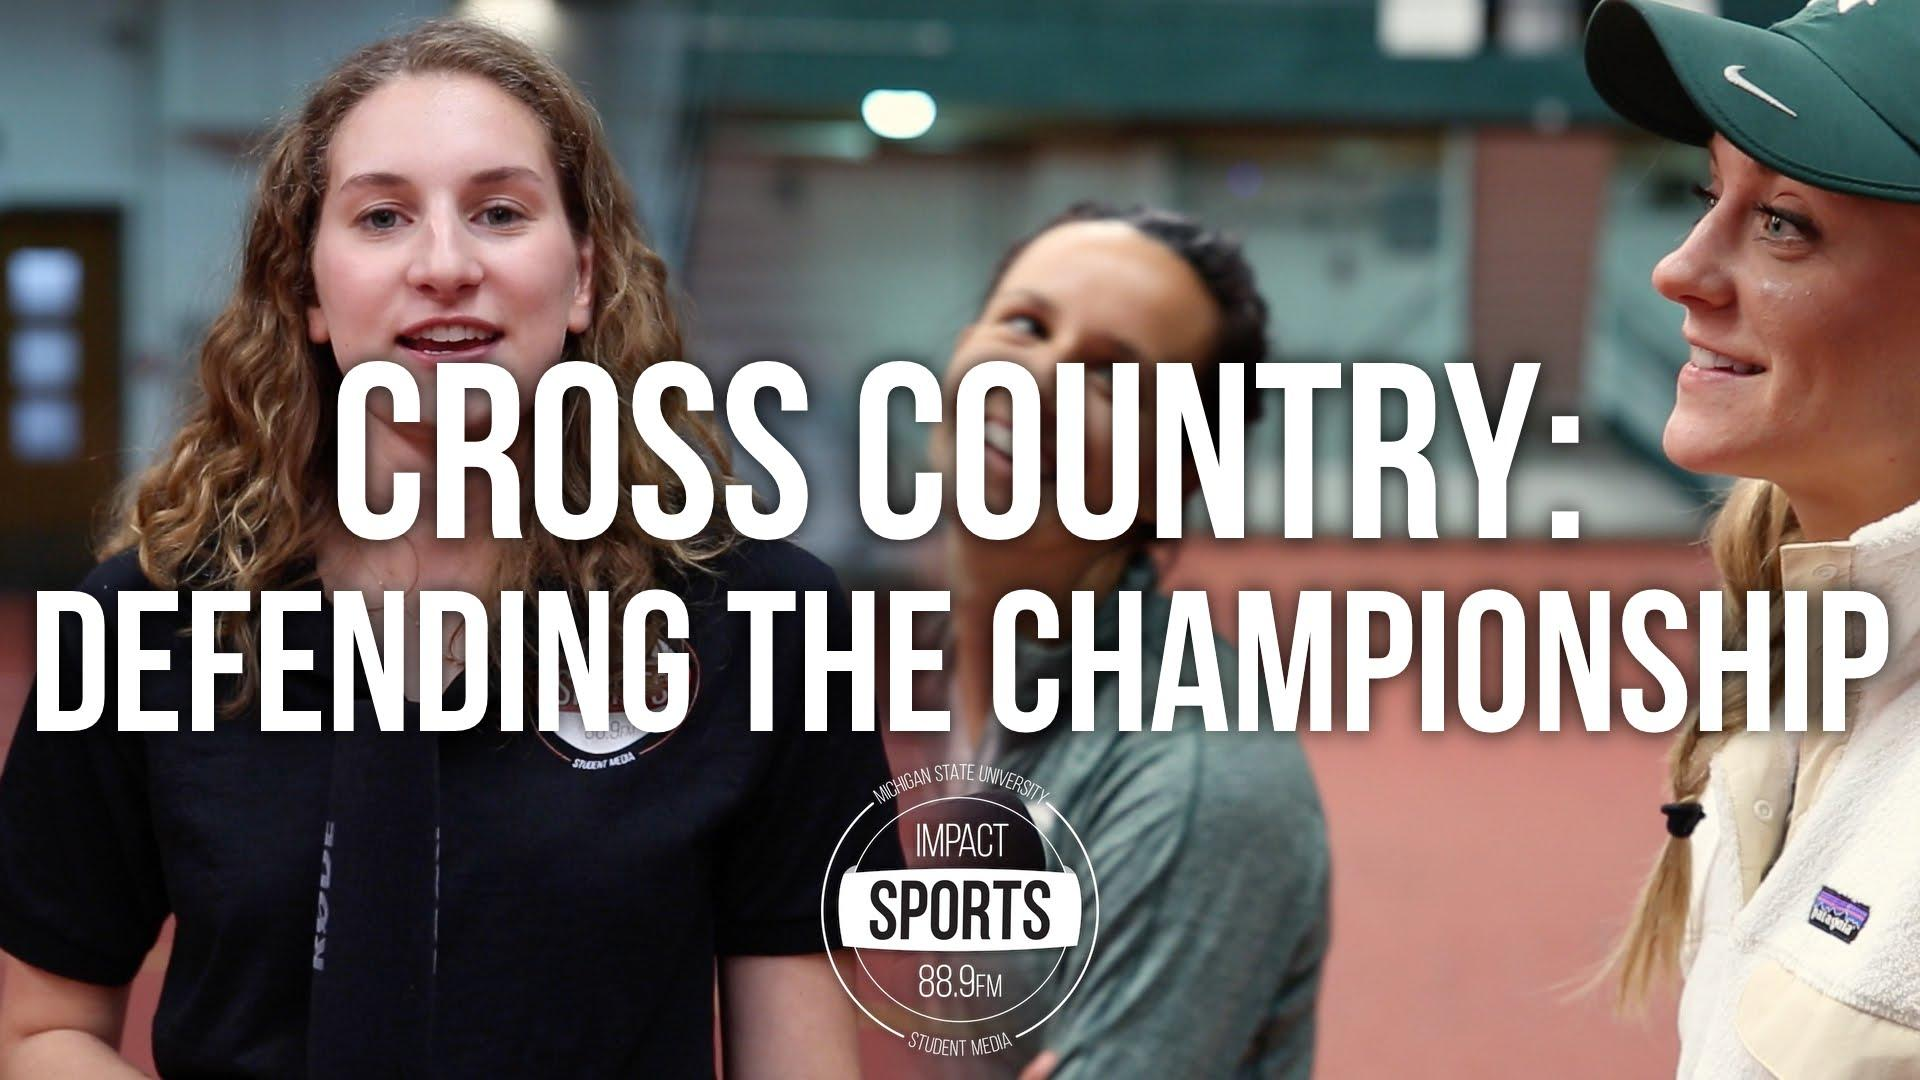 Cross Country: Defending the Championship